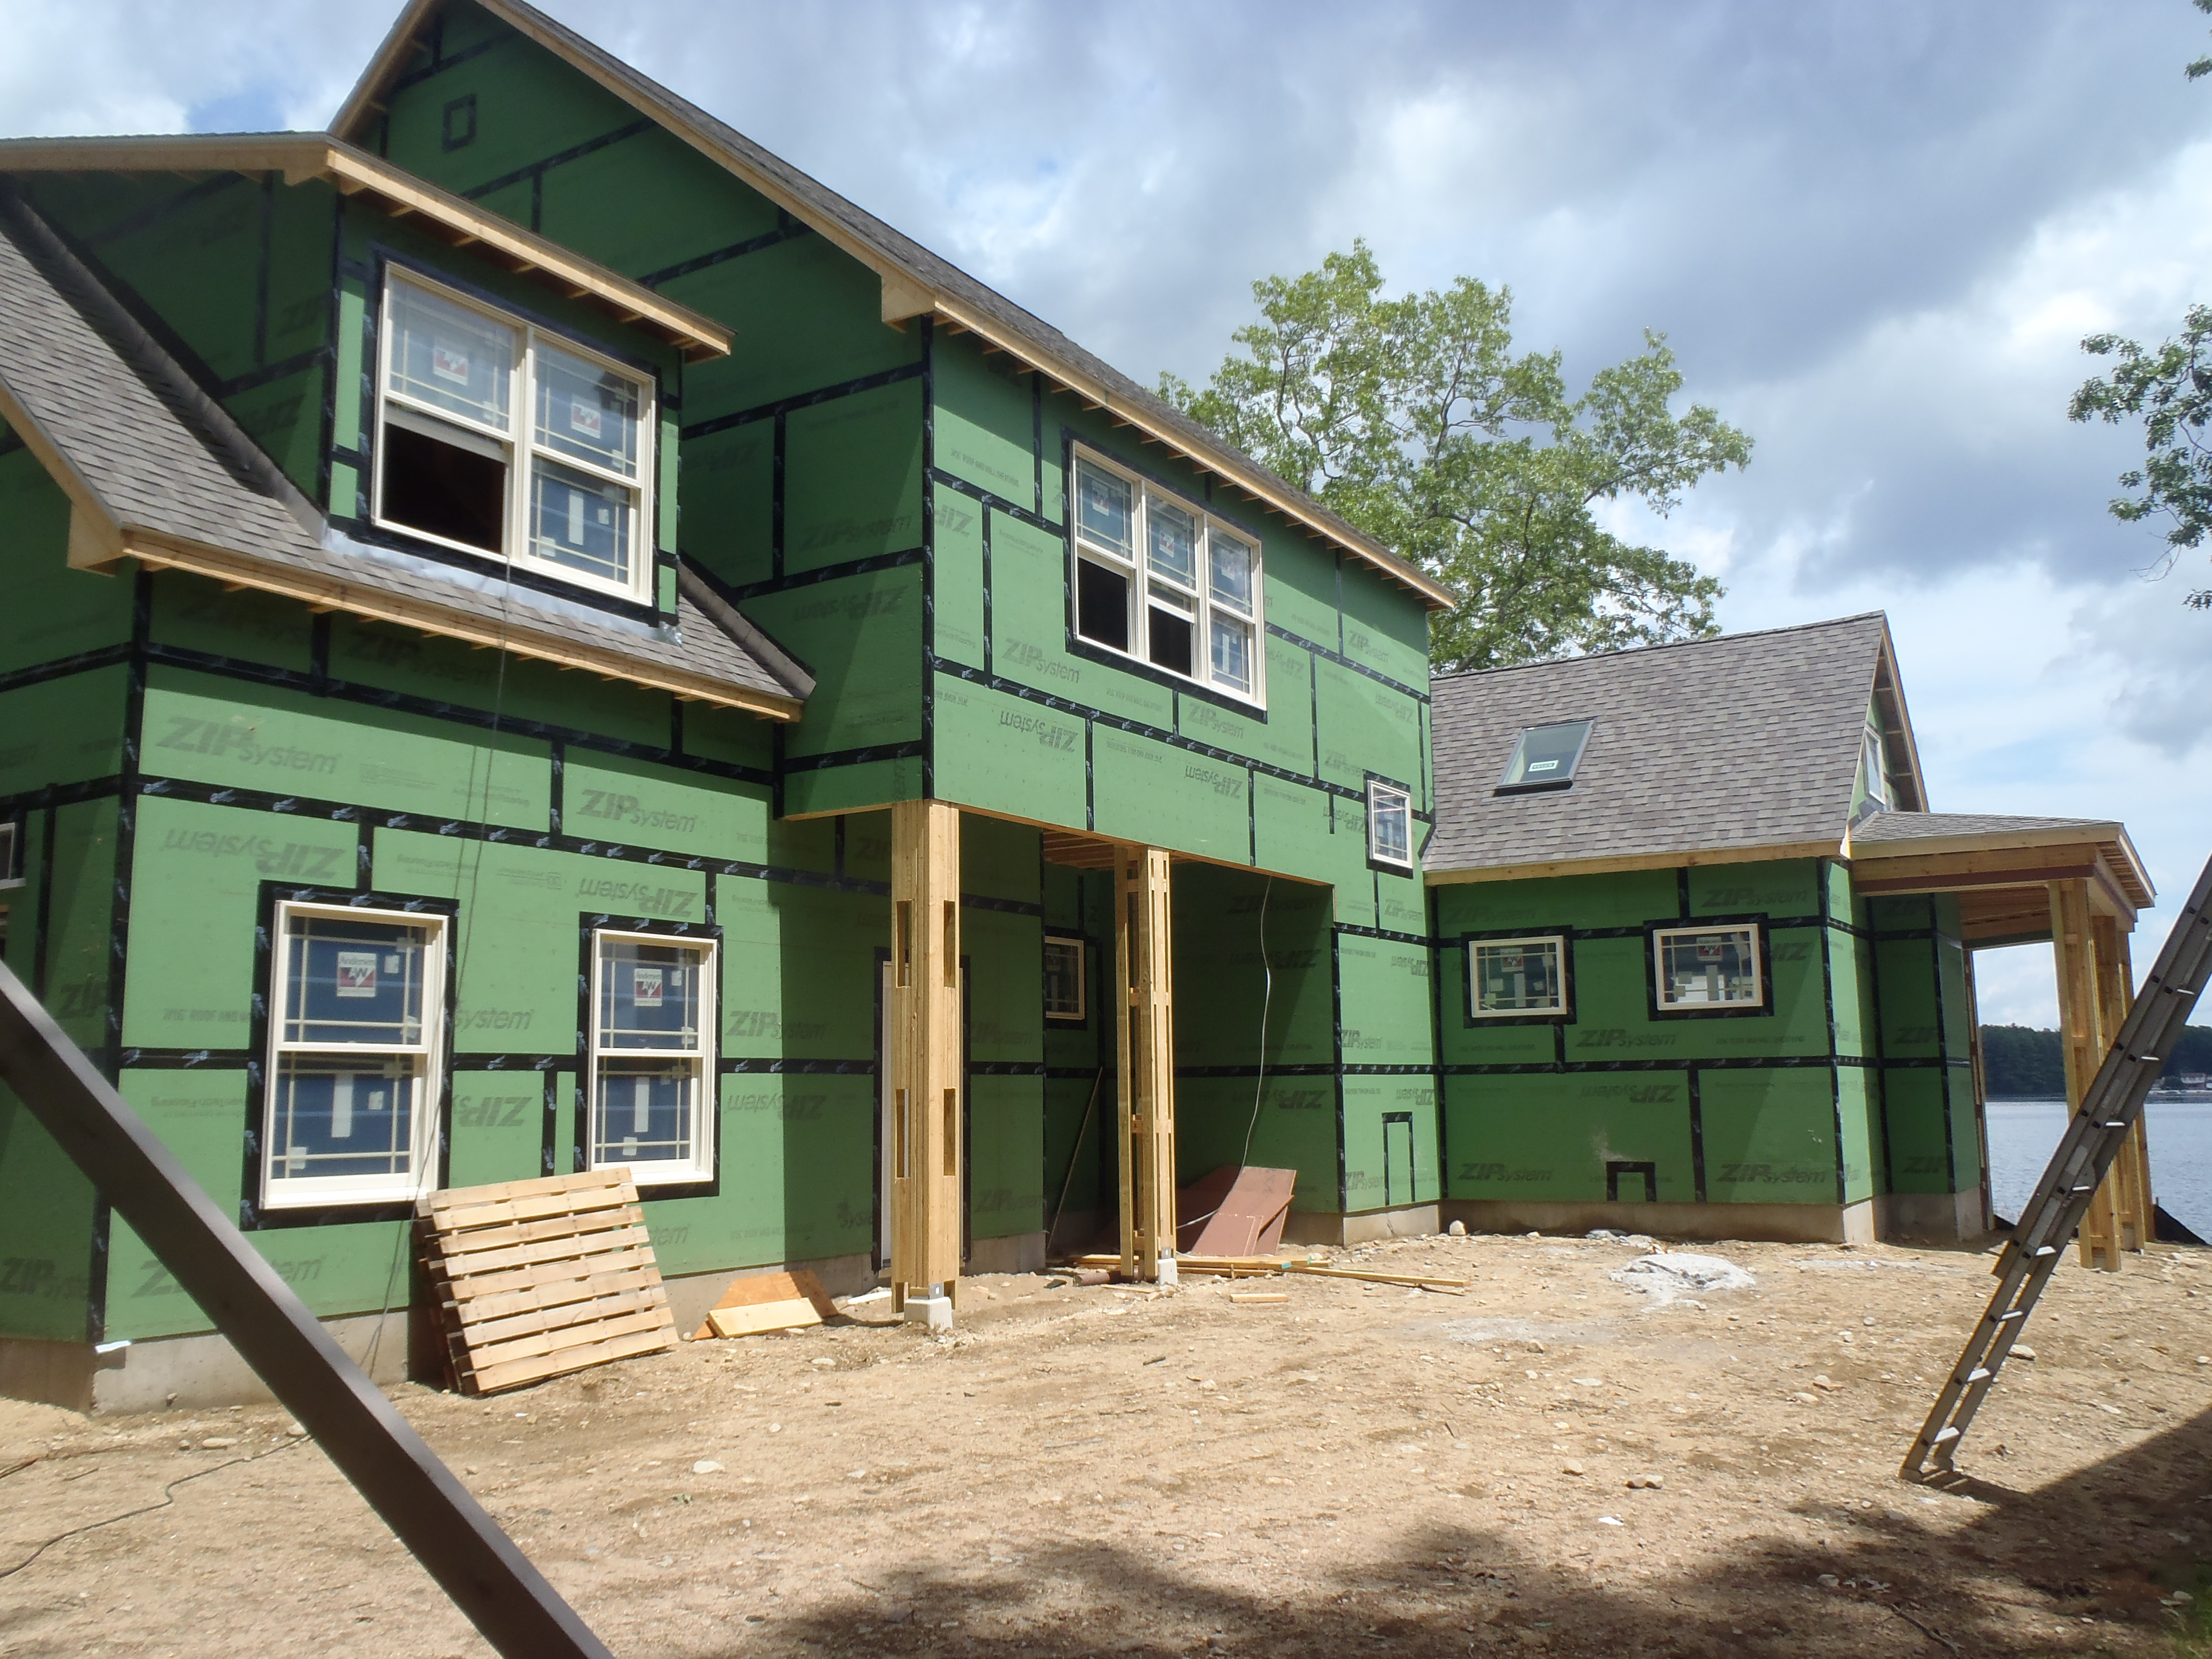 Design Build Is A Method Of Building Or Remodeling A House Where One Group,  The Design Build Team, Works With The Homeowner To Provide Design And ...